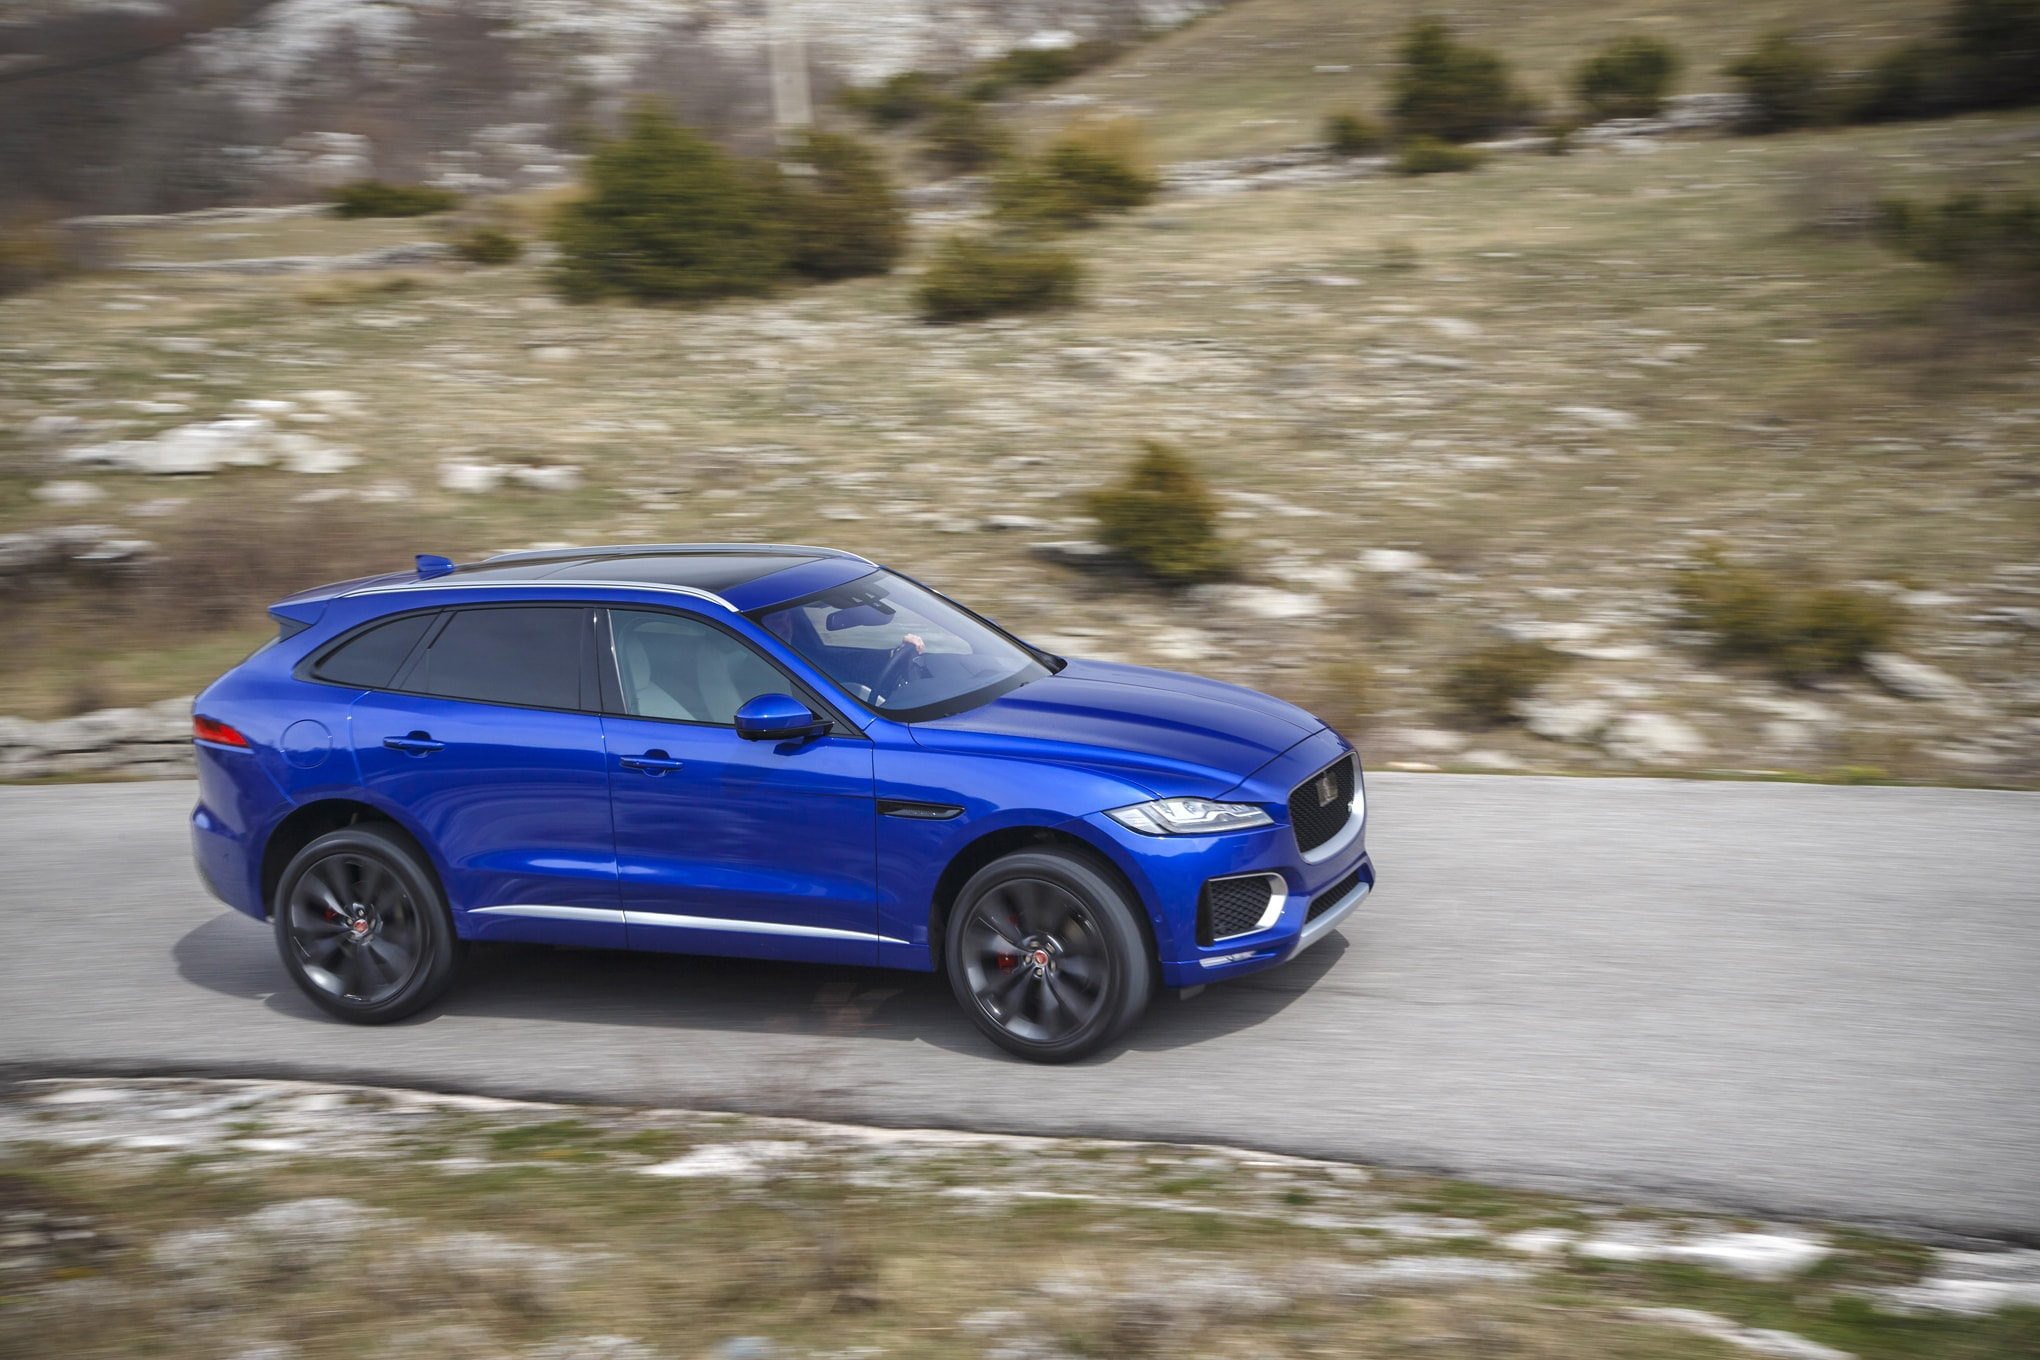 Jaguar F-Pace HD pictures